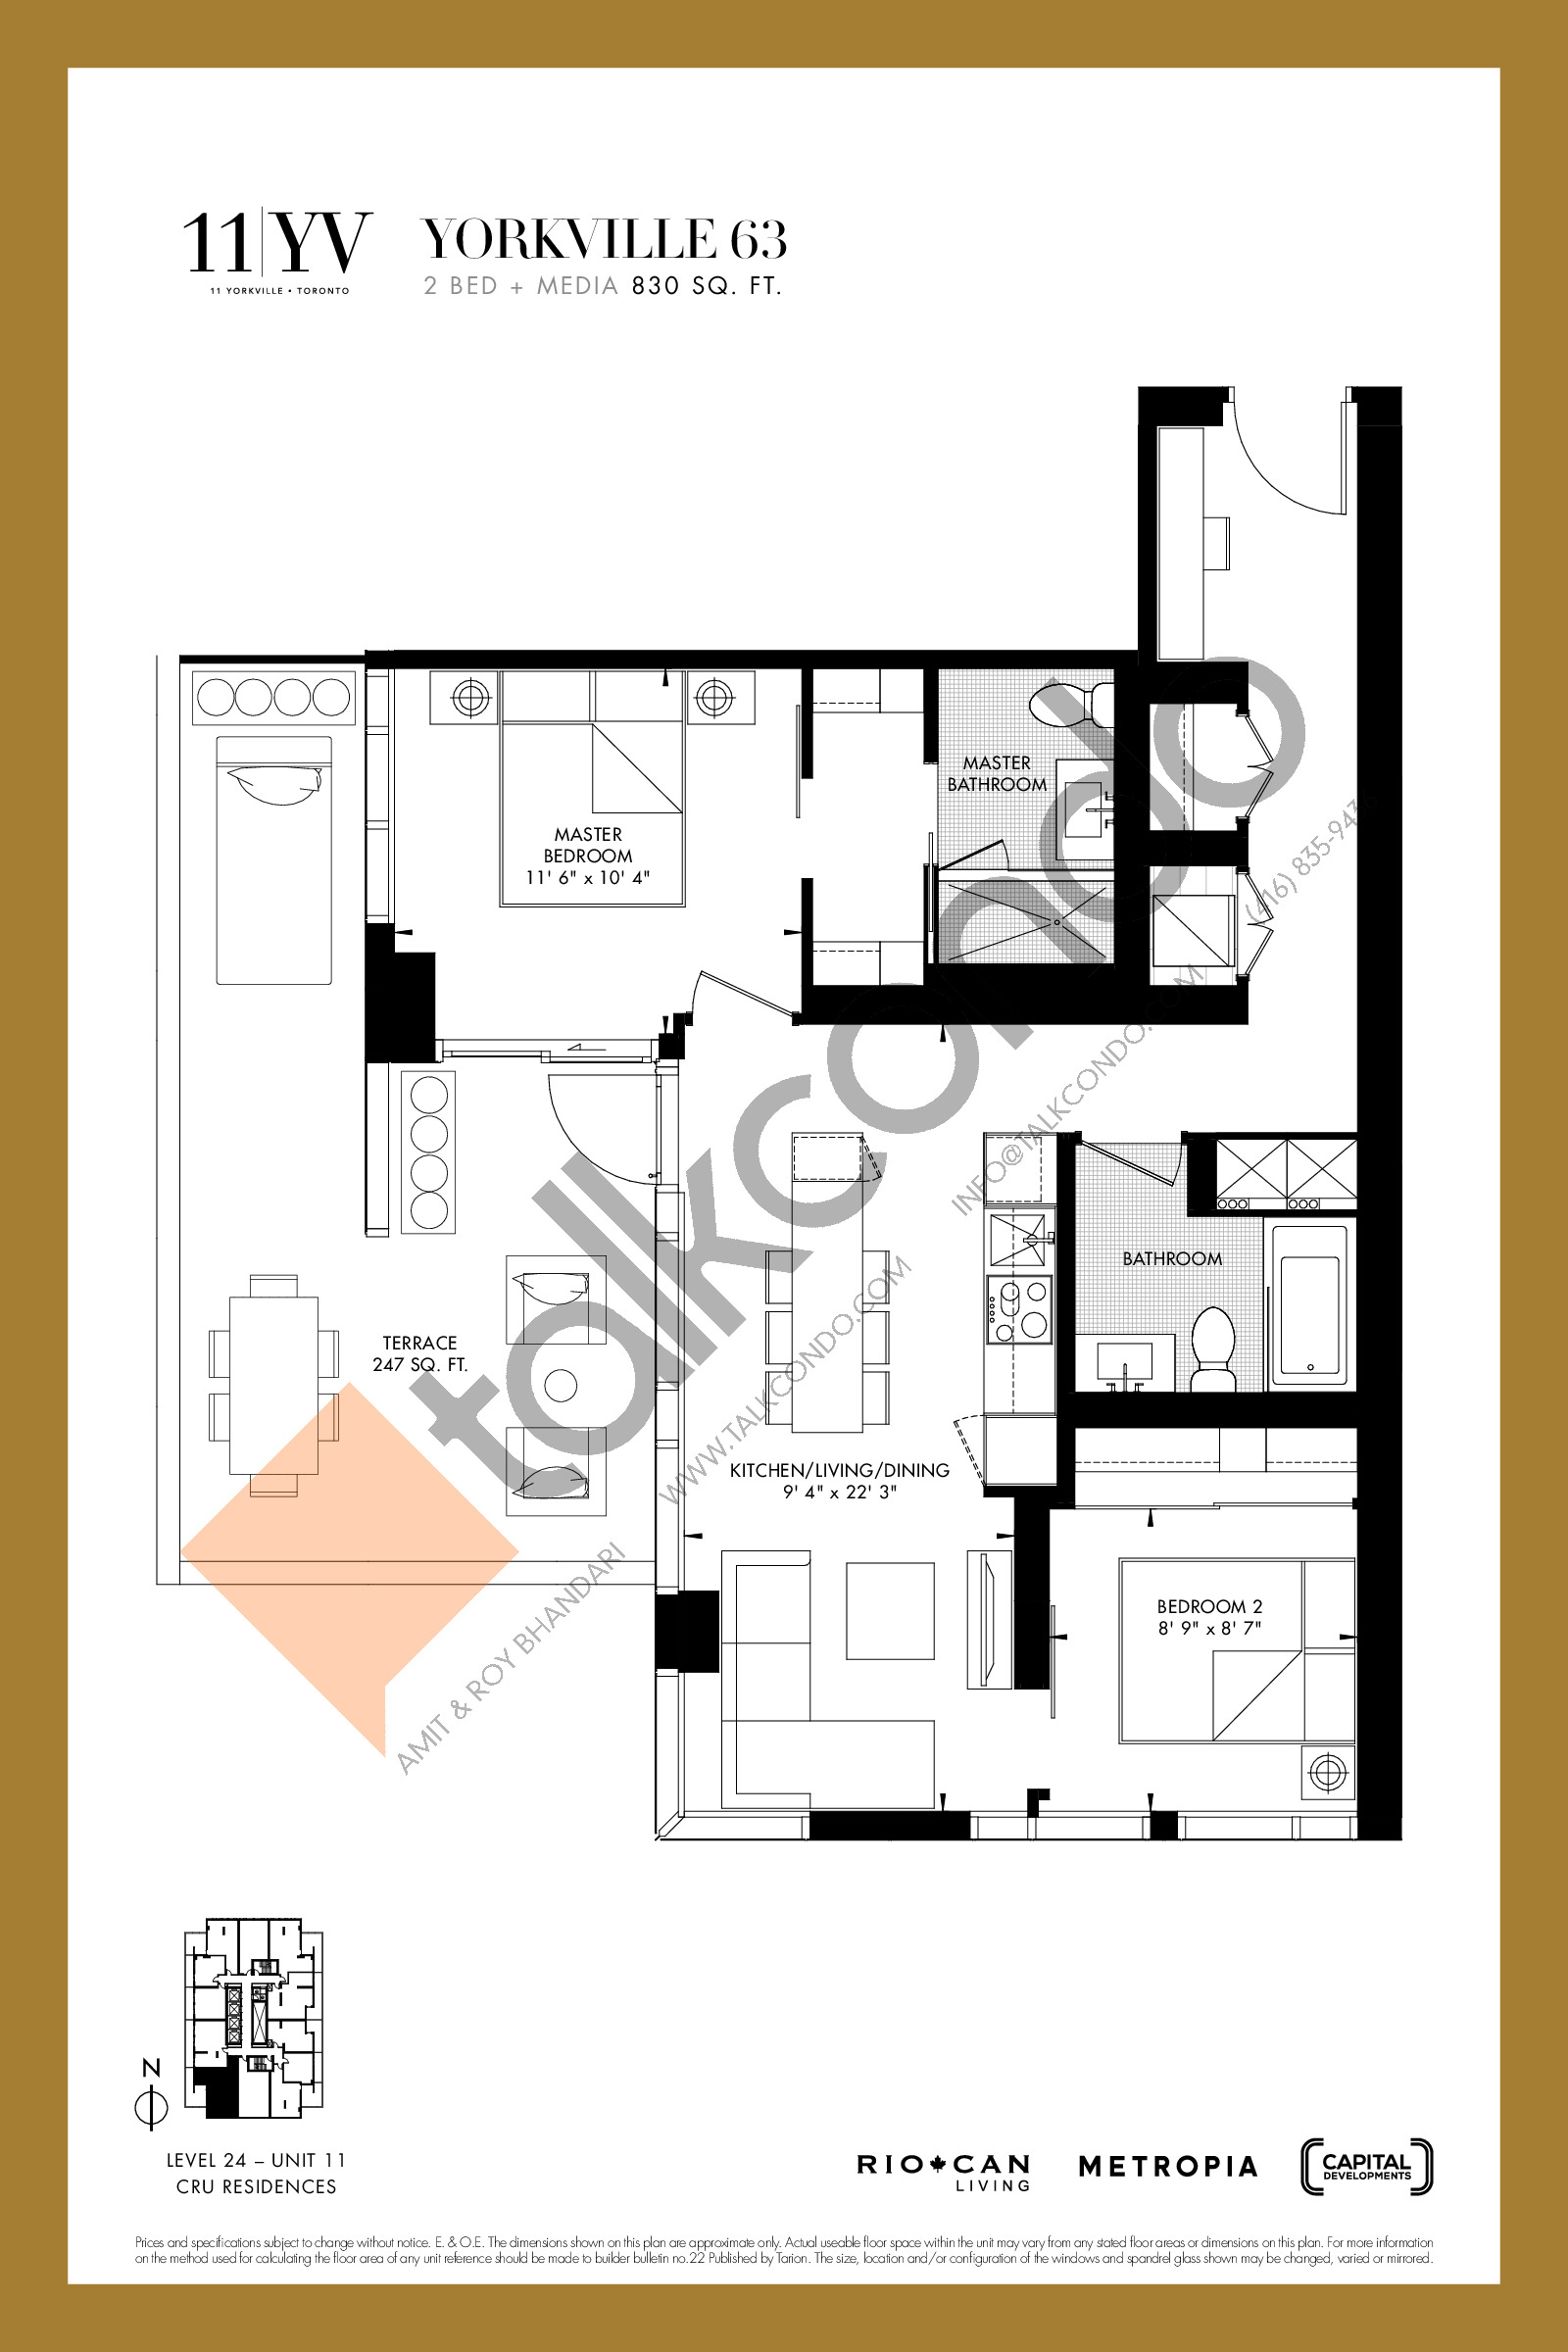 Yorkville 63 Floor Plan at 11YV Condos - 830 sq.ft